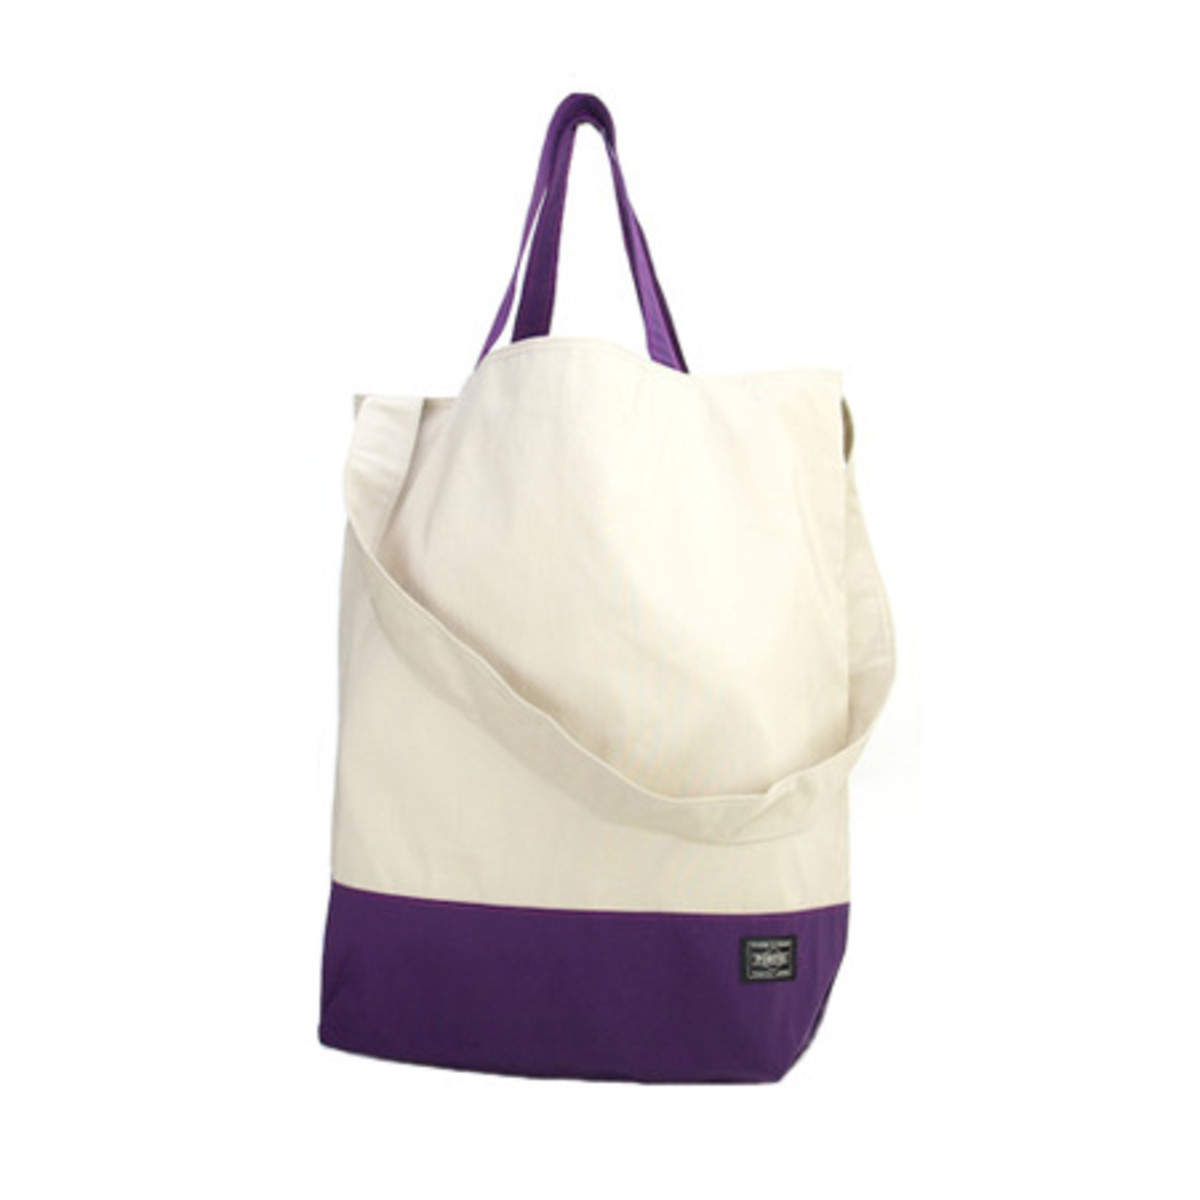 2-way-shopping-bag-beige